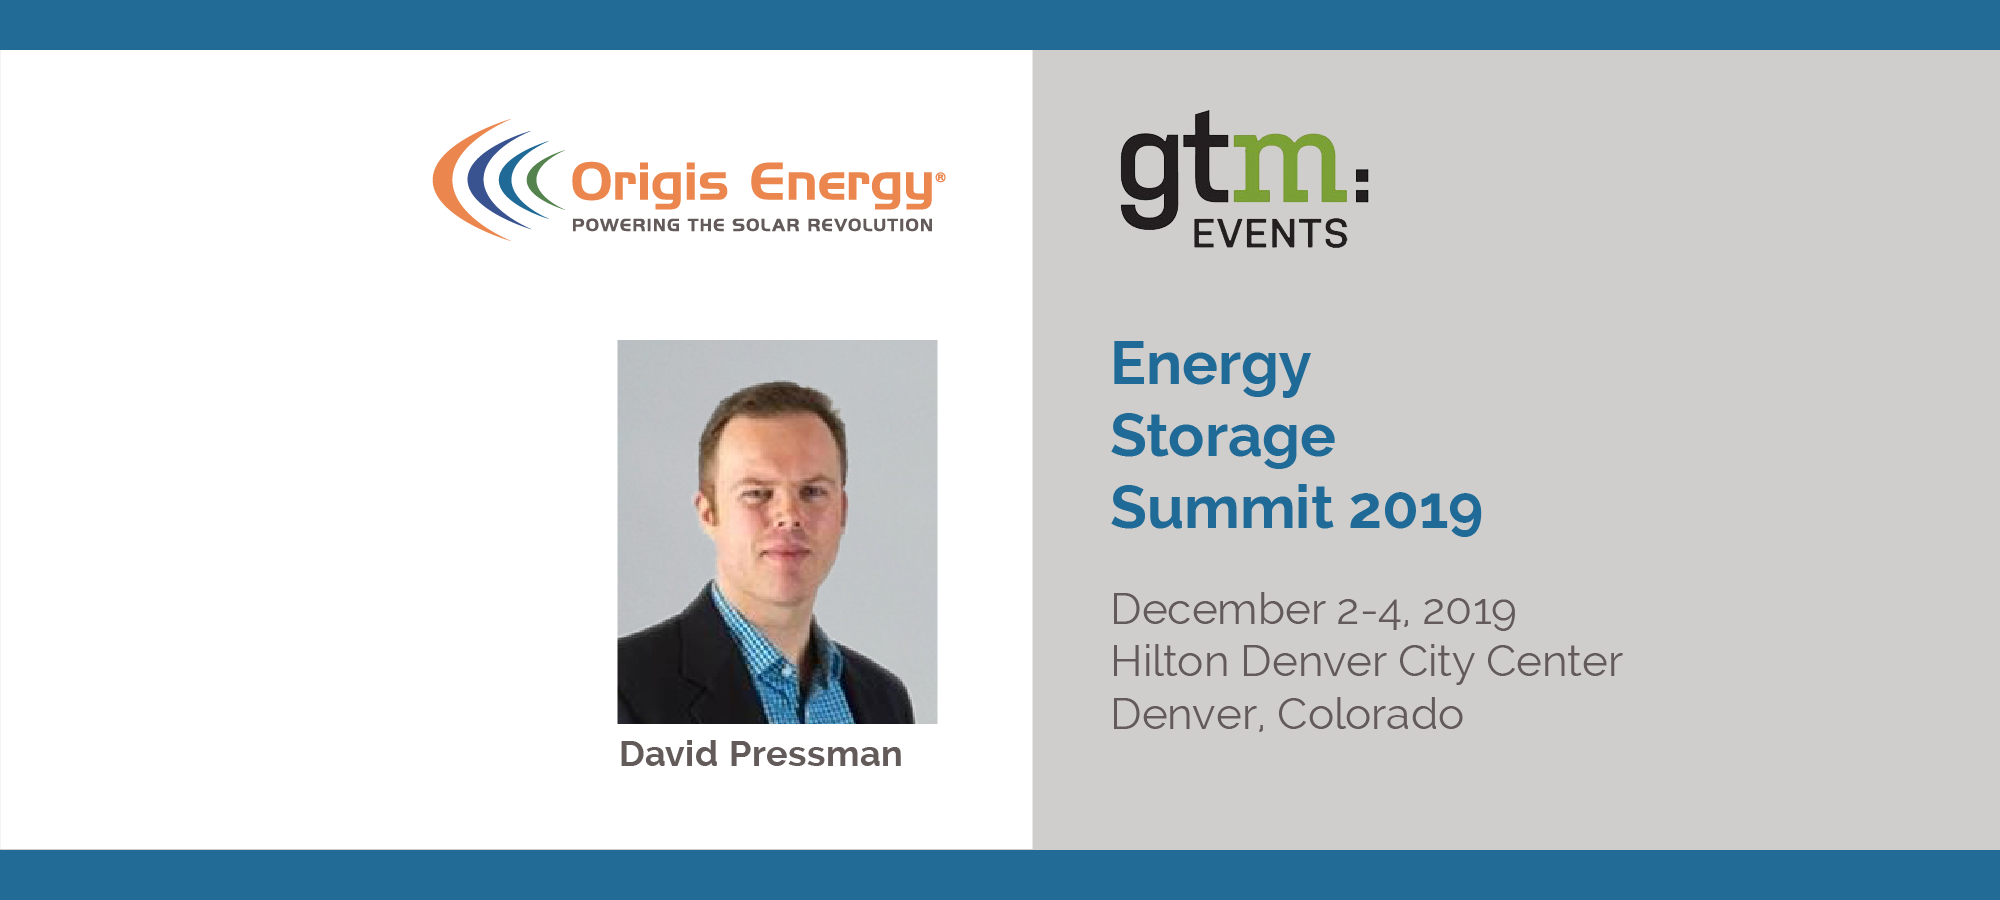 GTM Energy Storage Summit image